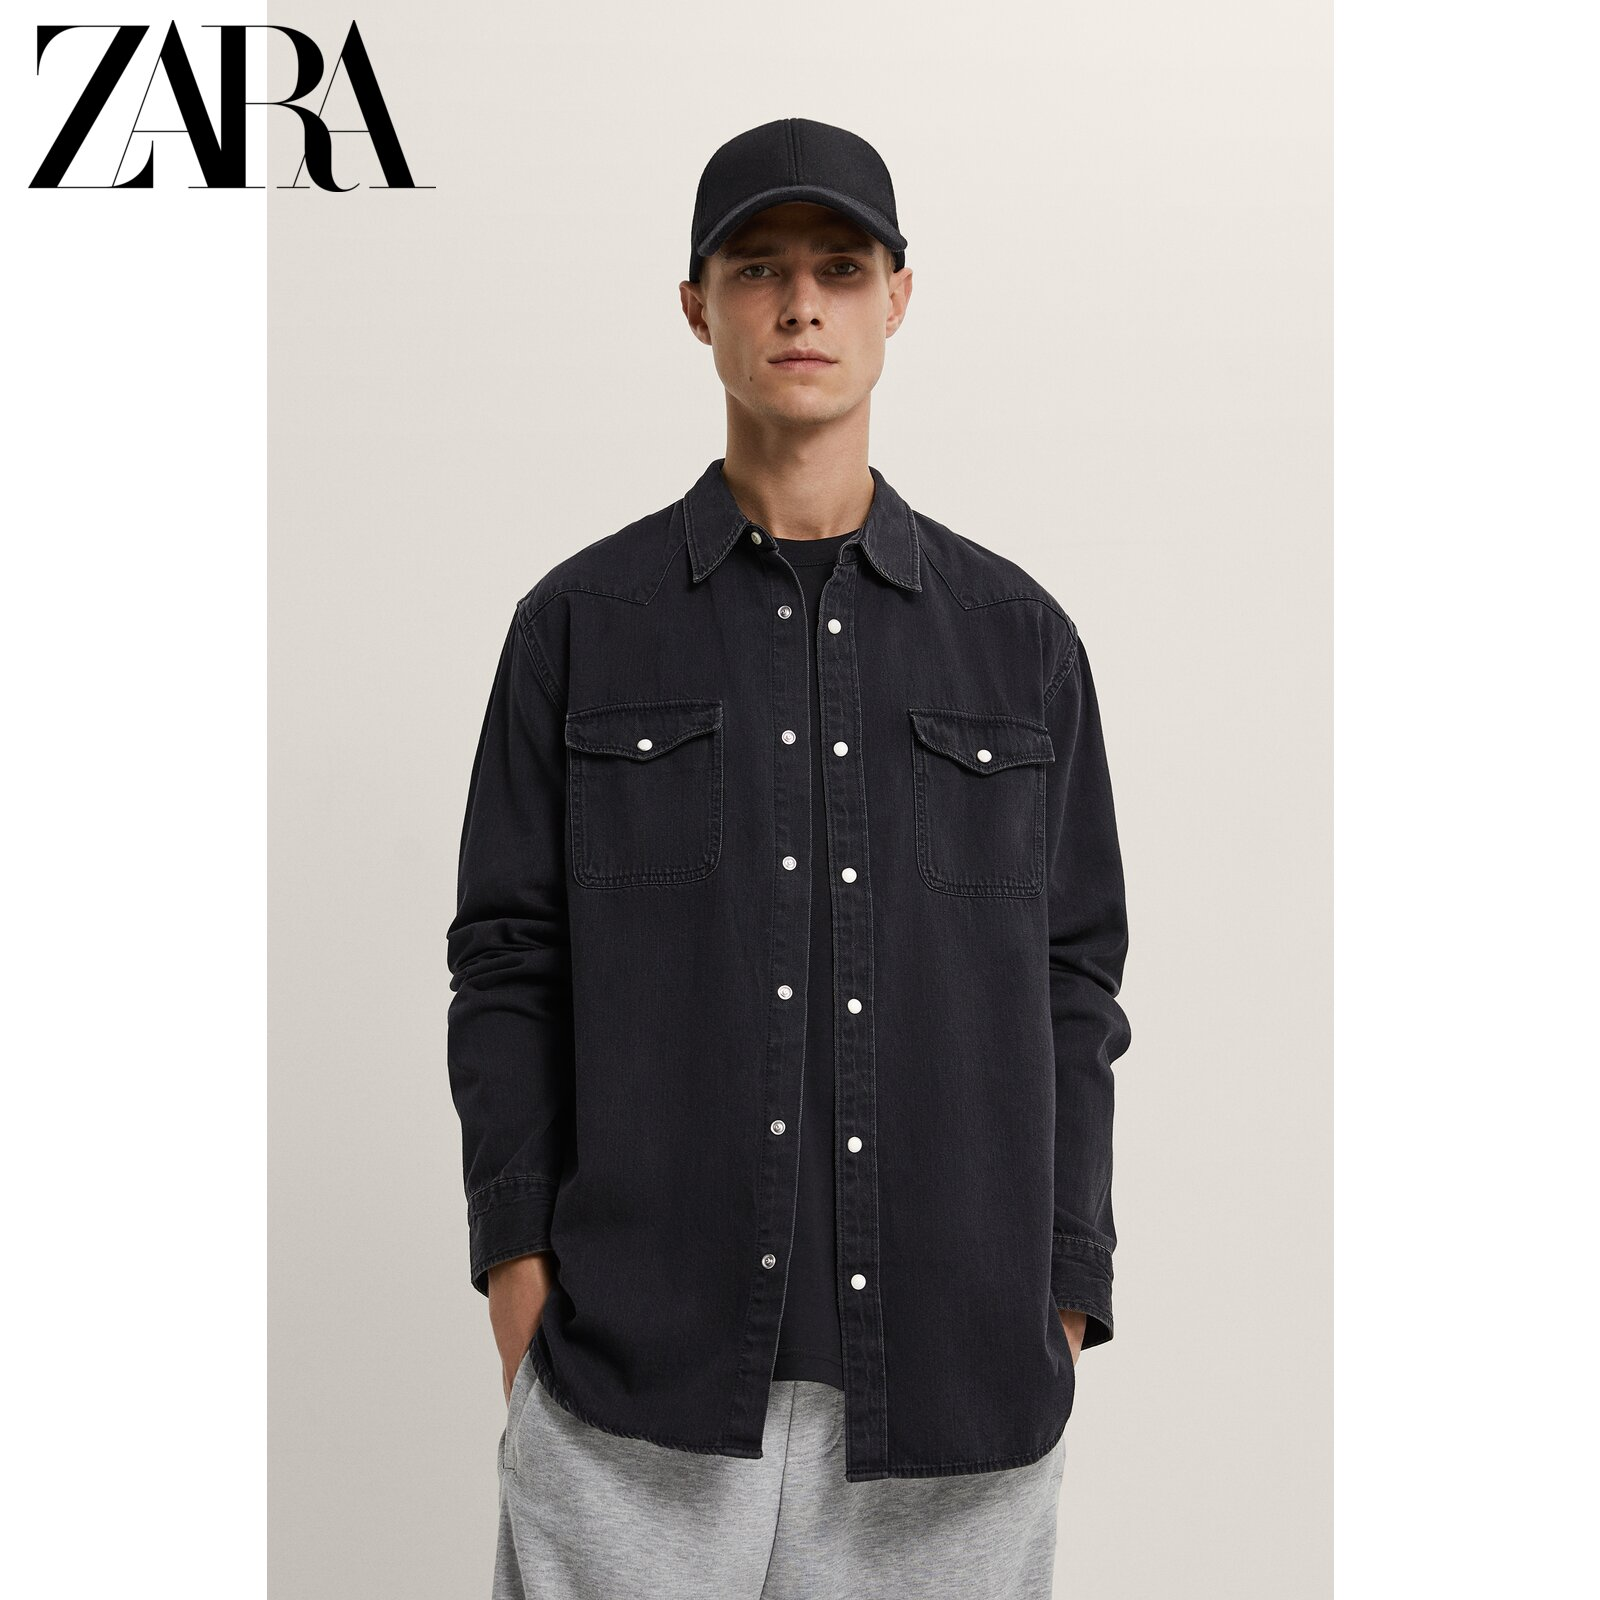 ZARA new men's wear long-sleeved denim shirt with thread decoration 08574450800